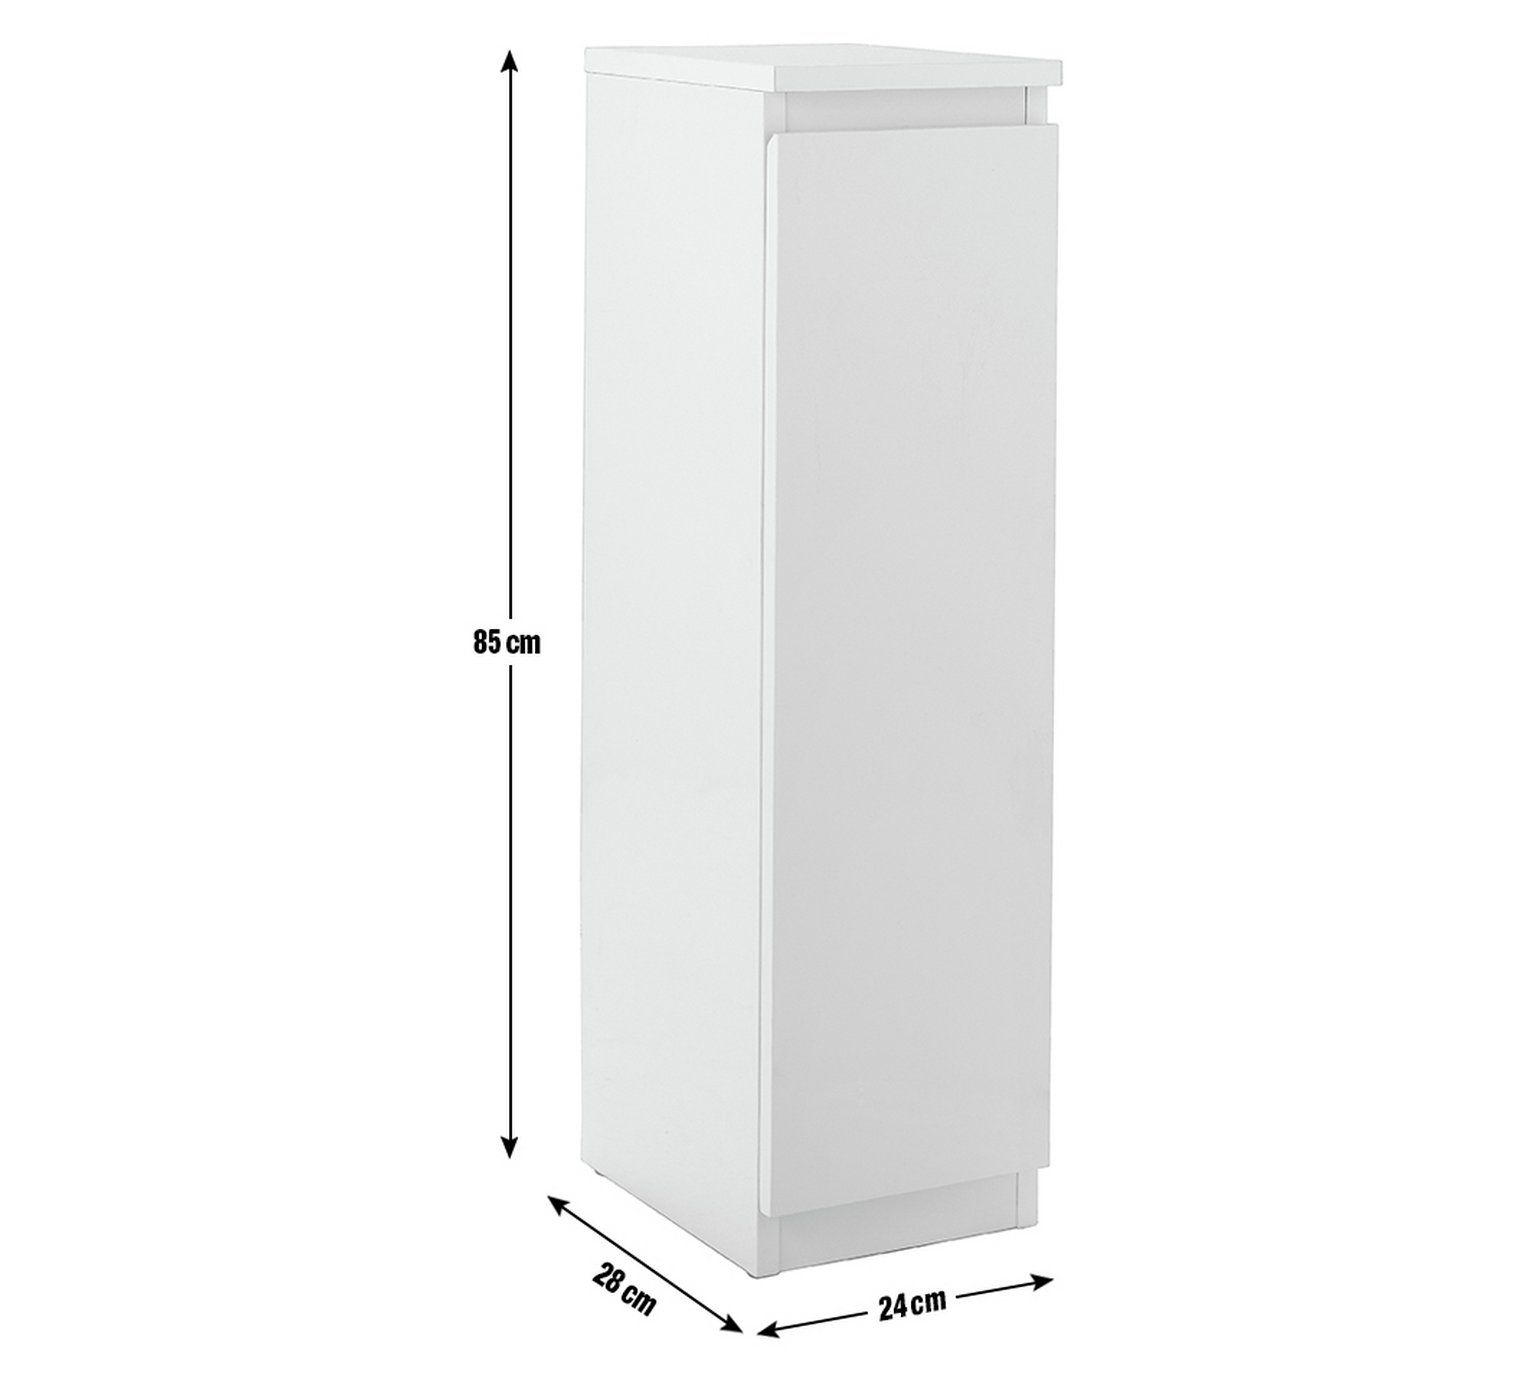 Buy Hygena Gloss Bathroom Floor Cabinet White At Argos Co Uk Visit Argos Co Uk T Bathroom Floor Cabinets White Bathroom Furniture Small Bathroom Renovations